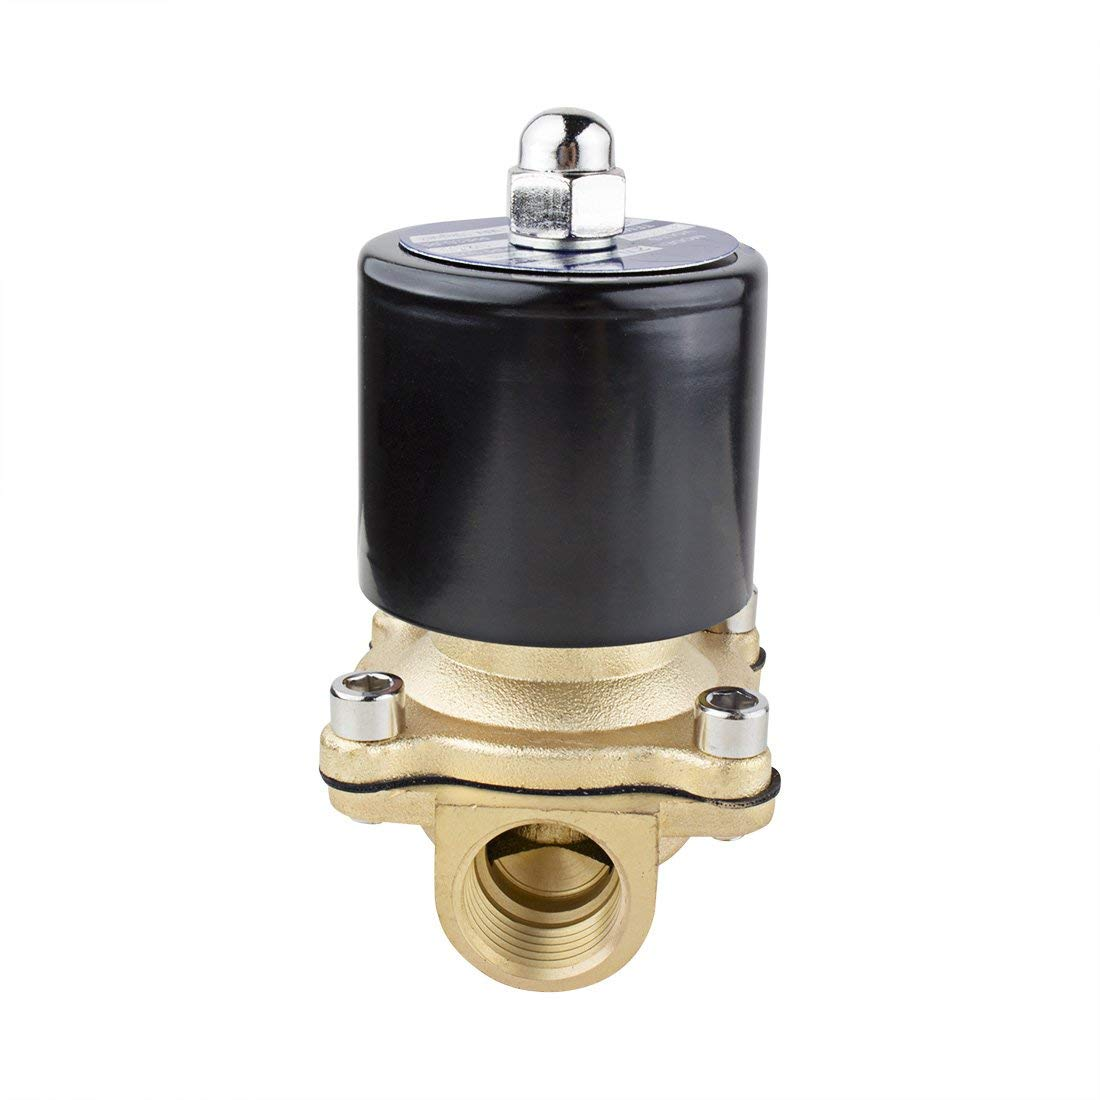 AC 110V 2W160-15 NPT 1//2 inch Normally Closed Brass 2-Way Solenoid Valve N//A for Water Air Gas Fuels